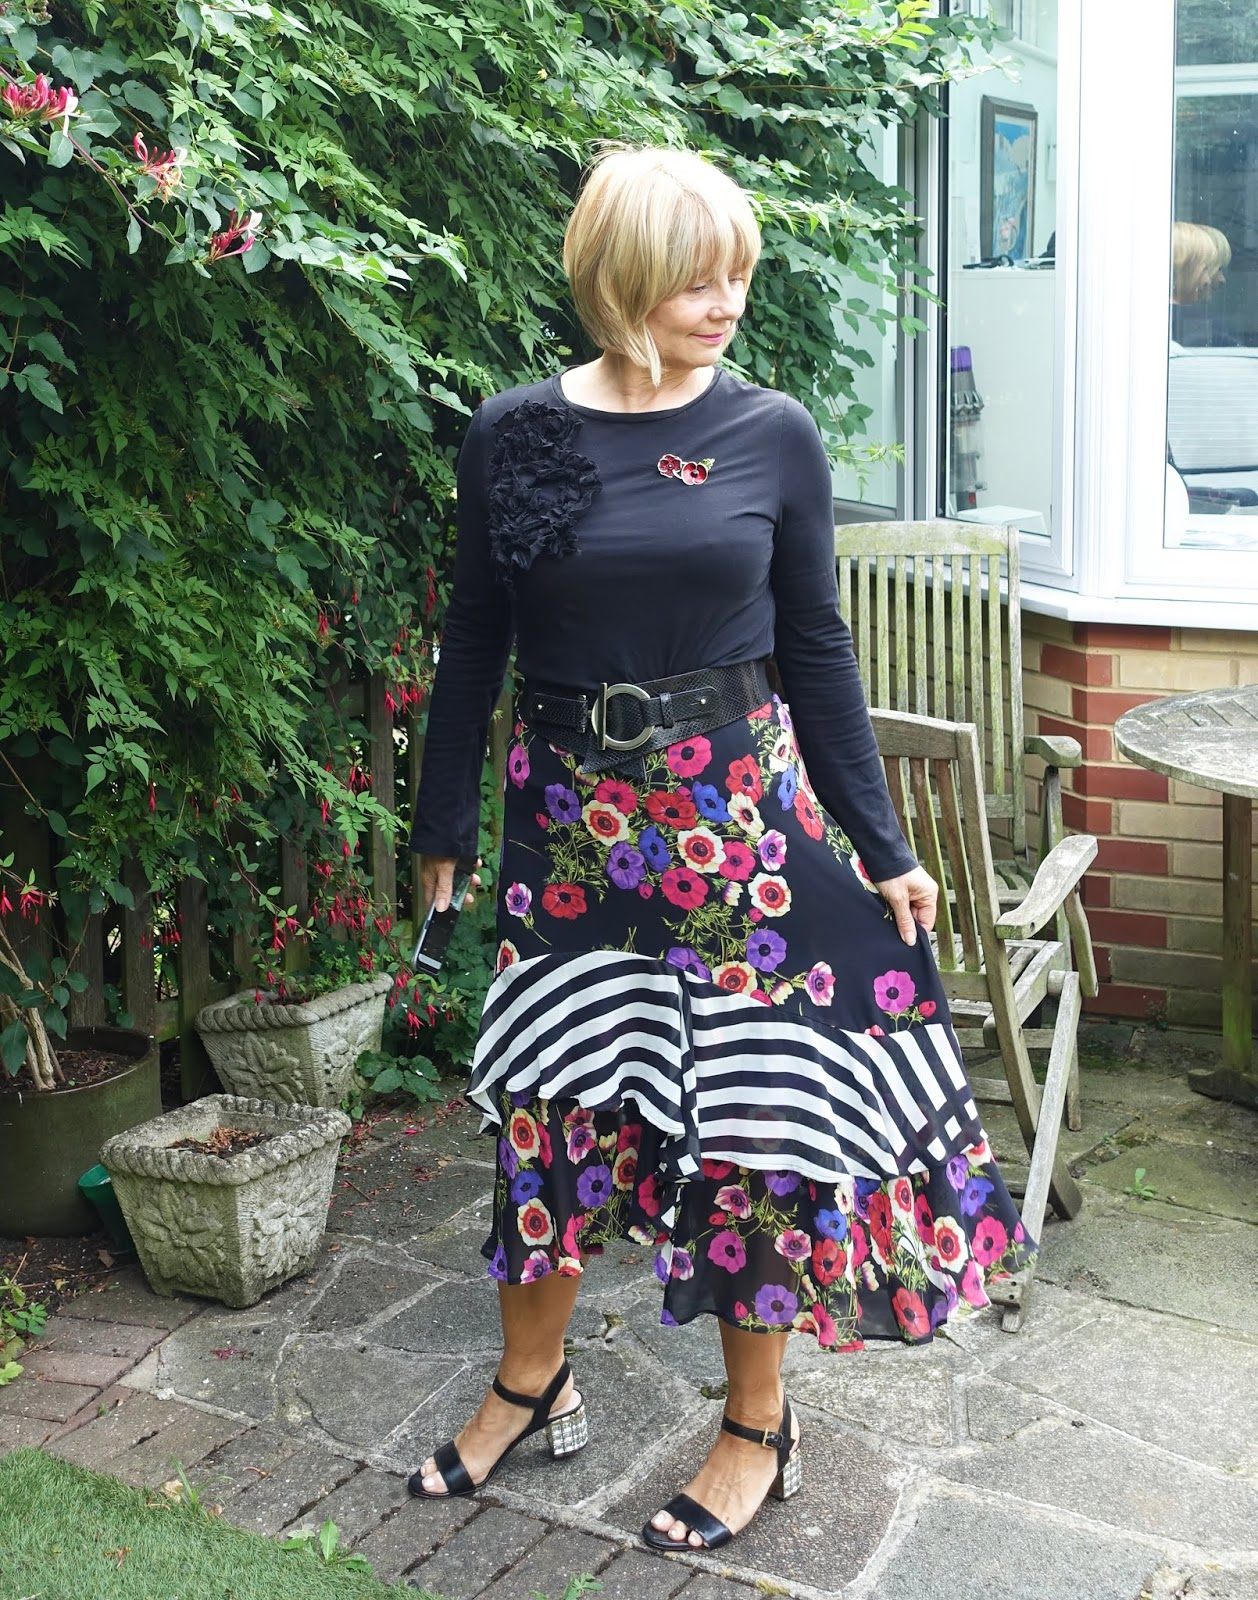 Is This Mutton style blog shows how older women can look more fashionable in white trainers when wearing midi skirts or dresses